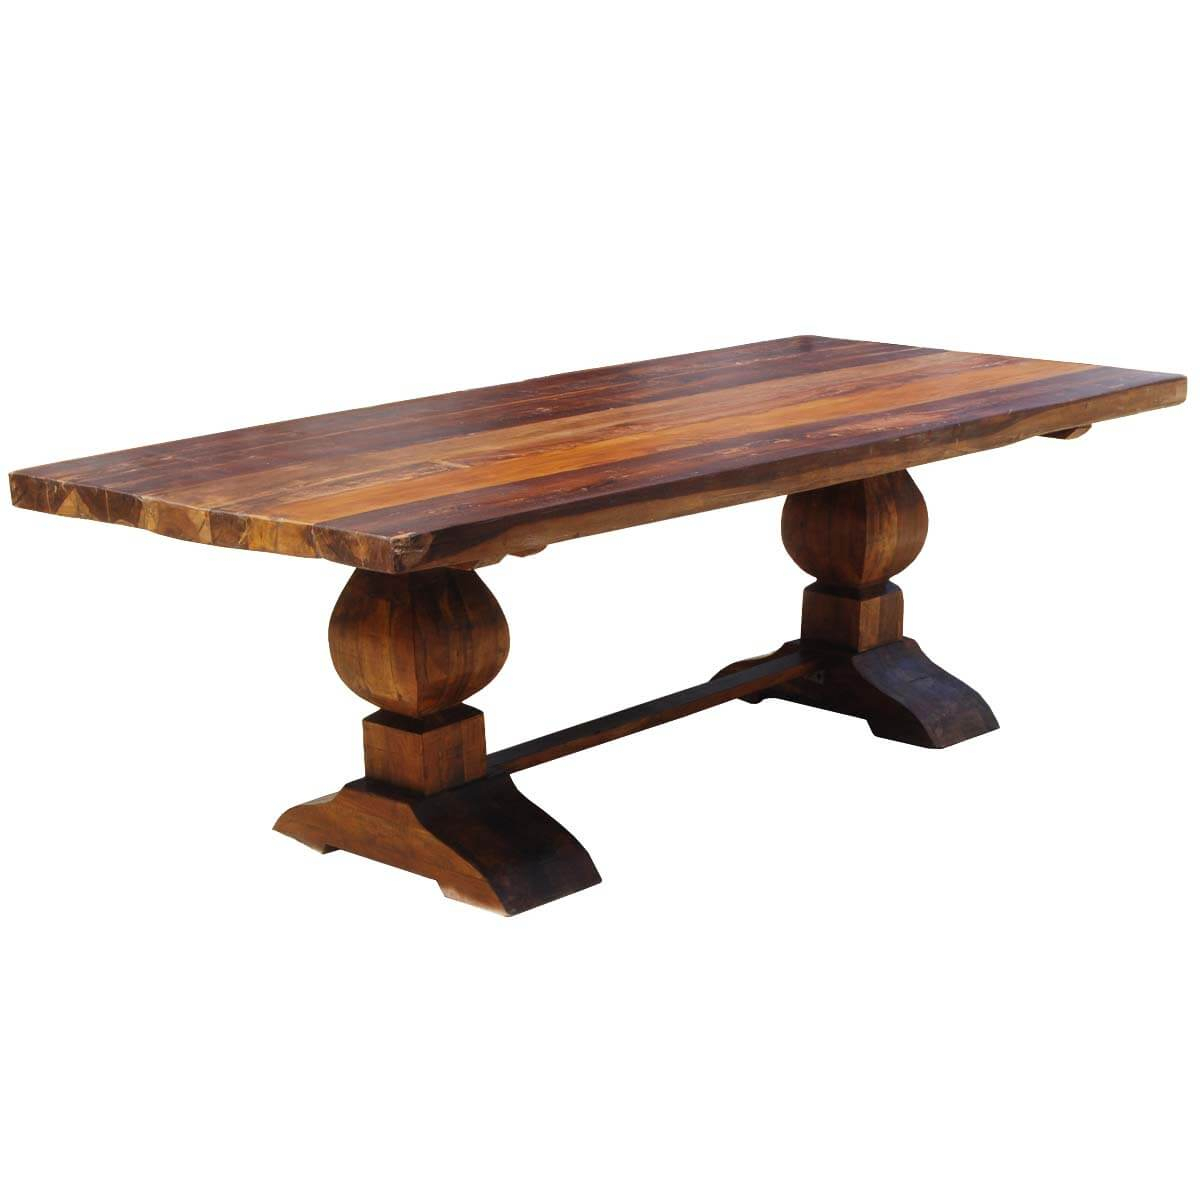 Large Rustic Reclaimed Wood Double Trestle Pedestal Dining With Regard To 2018 Trestle Dining Tables (Photo 10 of 15)